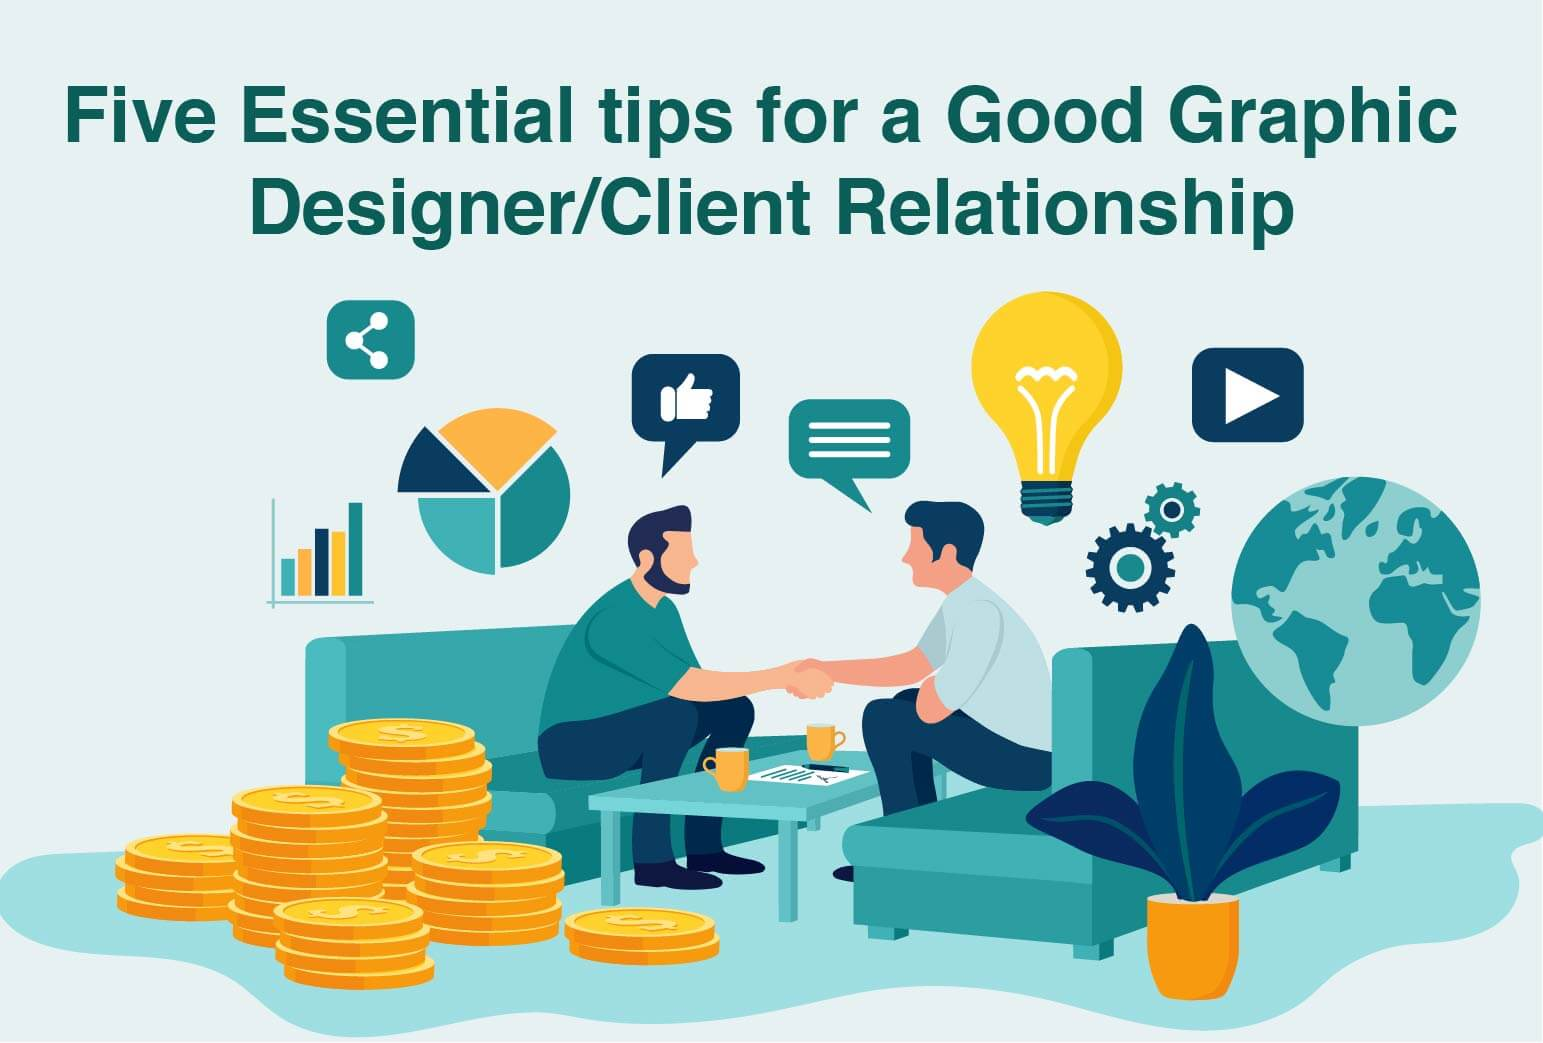 5 essential tips for a Good Graphic Designer/Client Relationship